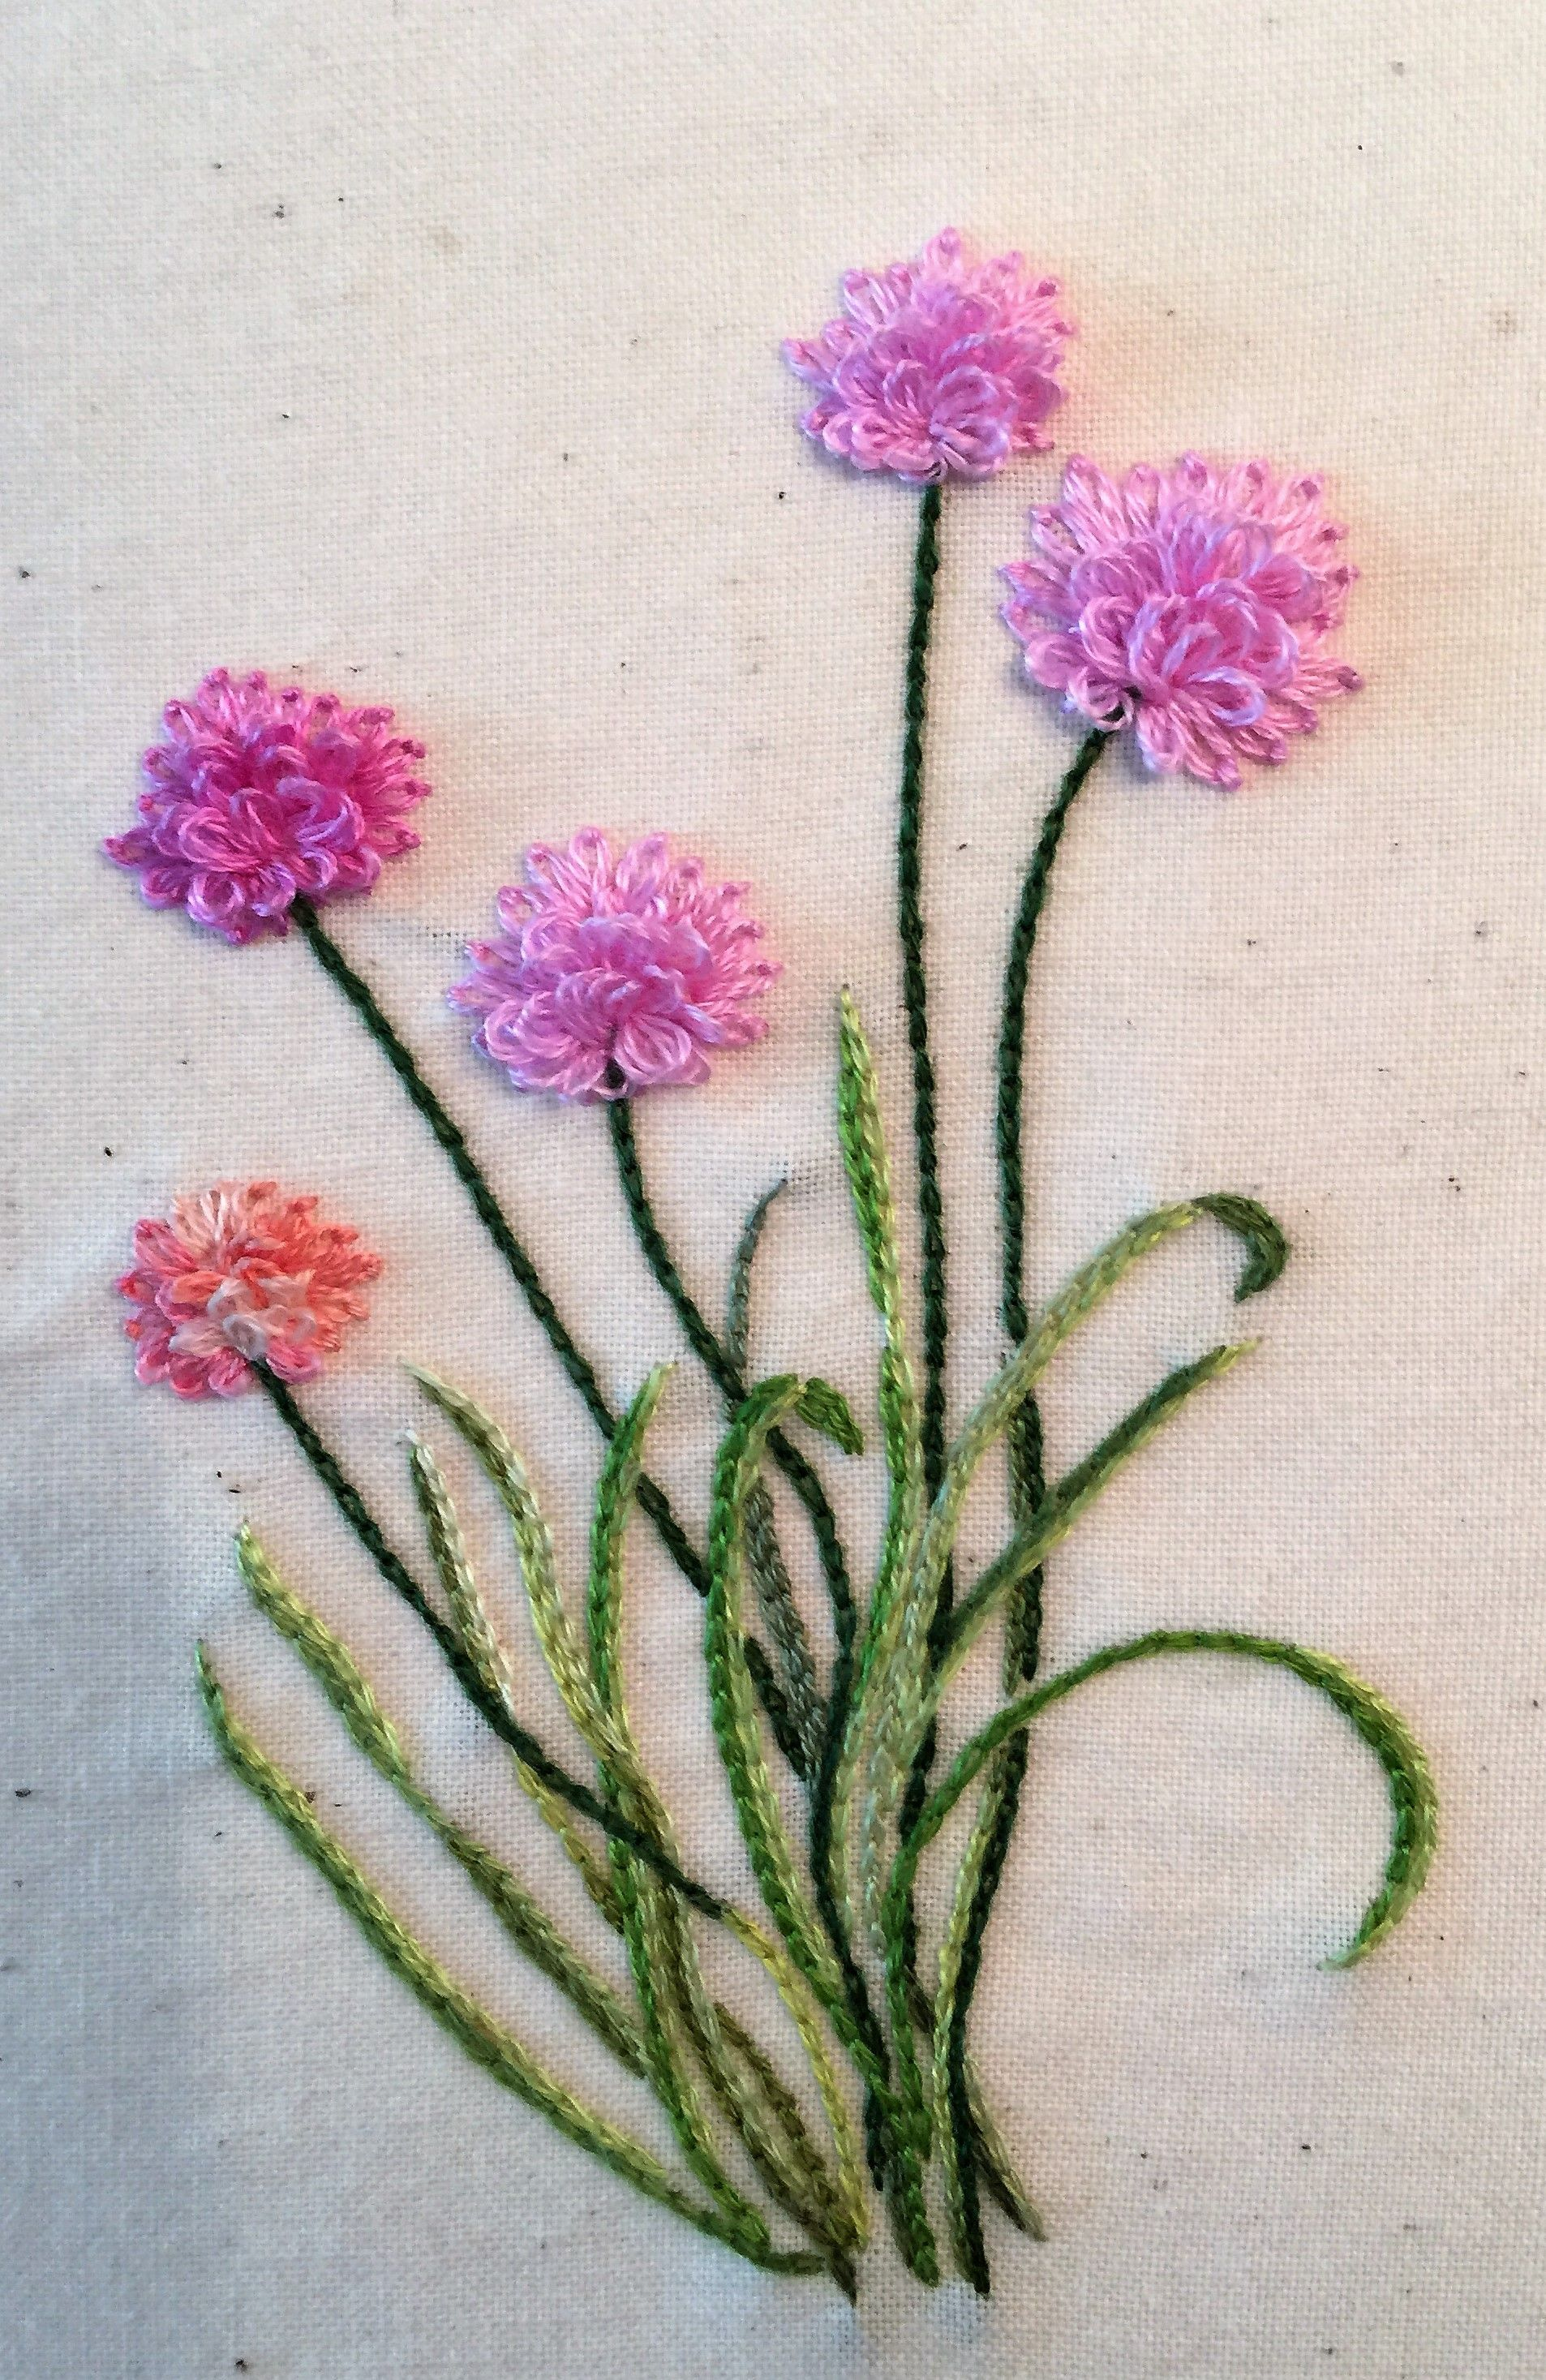 Flowers embroidery looks like sea thrift hand embroidery